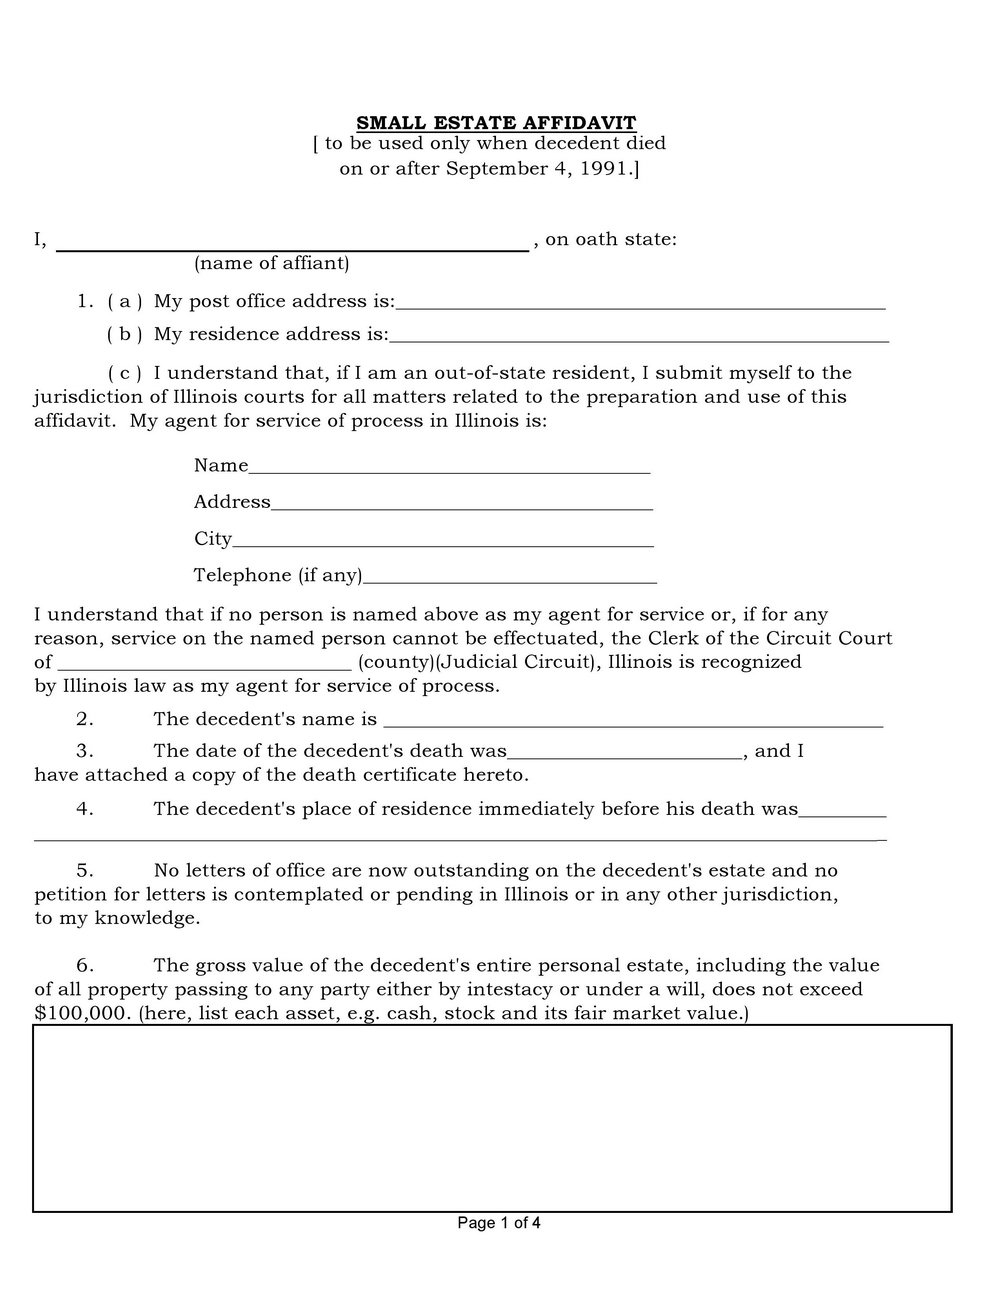 Bee Affidavit Word Template